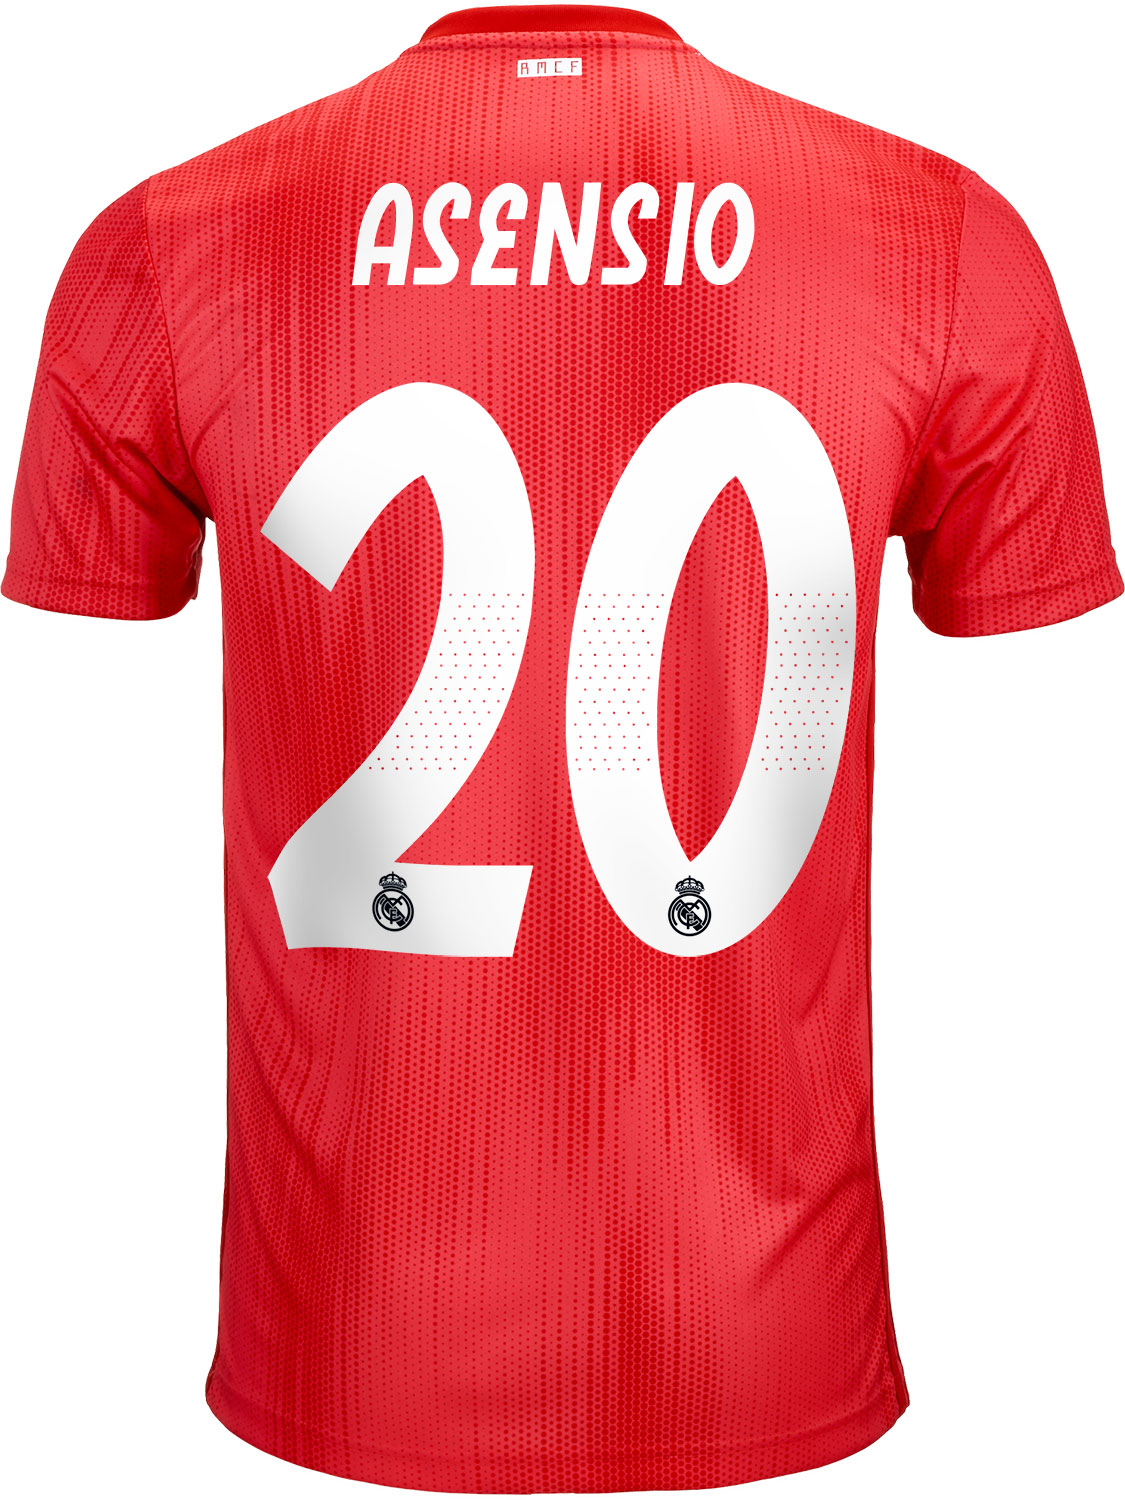 2018/19 adidas Marco Asensio Real Madrid 3rd Jersey - SoccerPro